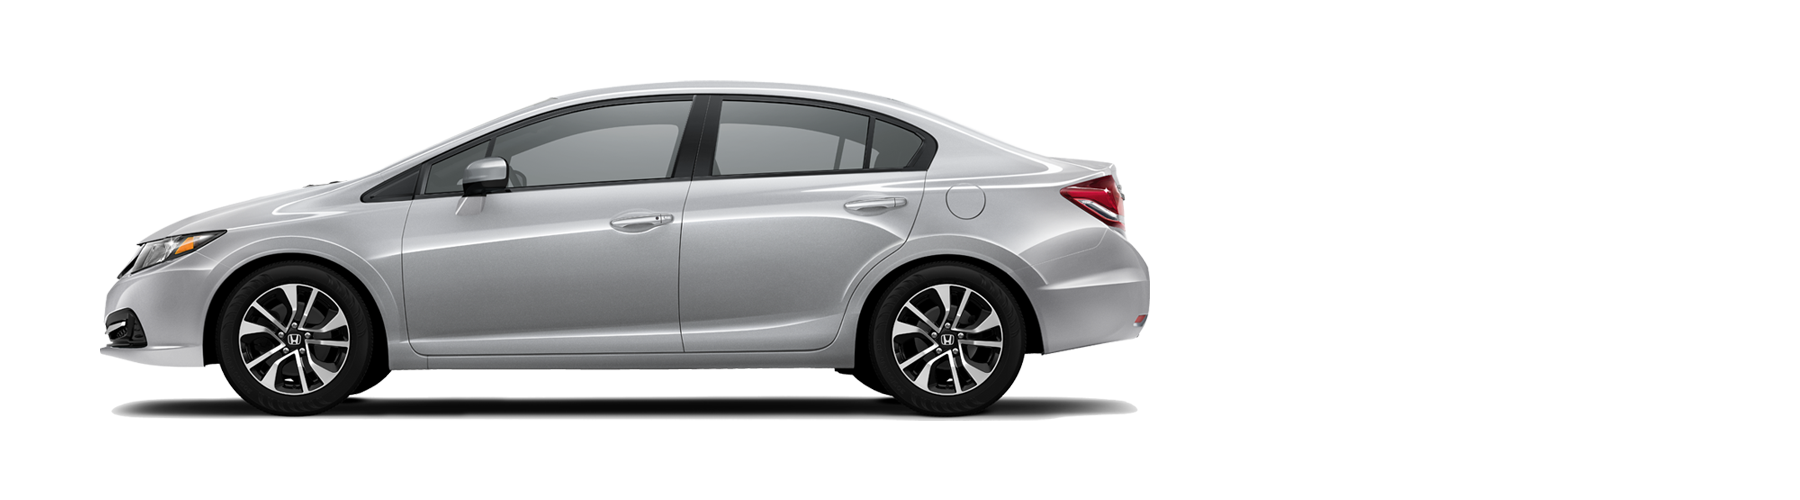 2015 Honda Civic | New England Honda Dealers